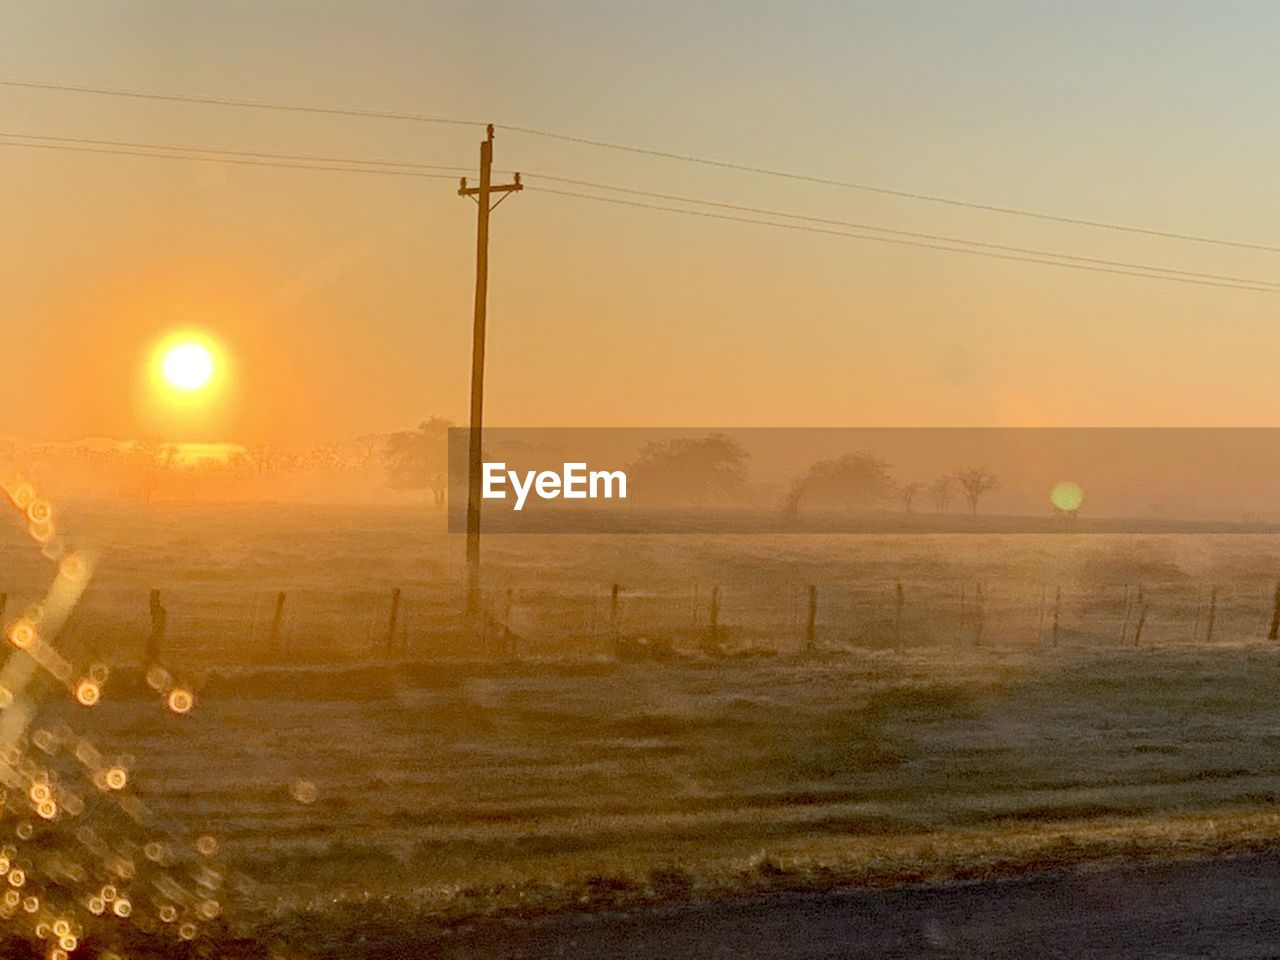 cable, electricity, sky, power line, sun, sunset, field, electricity pylon, environment, land, landscape, tranquility, nature, beauty in nature, no people, tranquil scene, sunlight, technology, scenics - nature, fog, power supply, lens flare, hazy